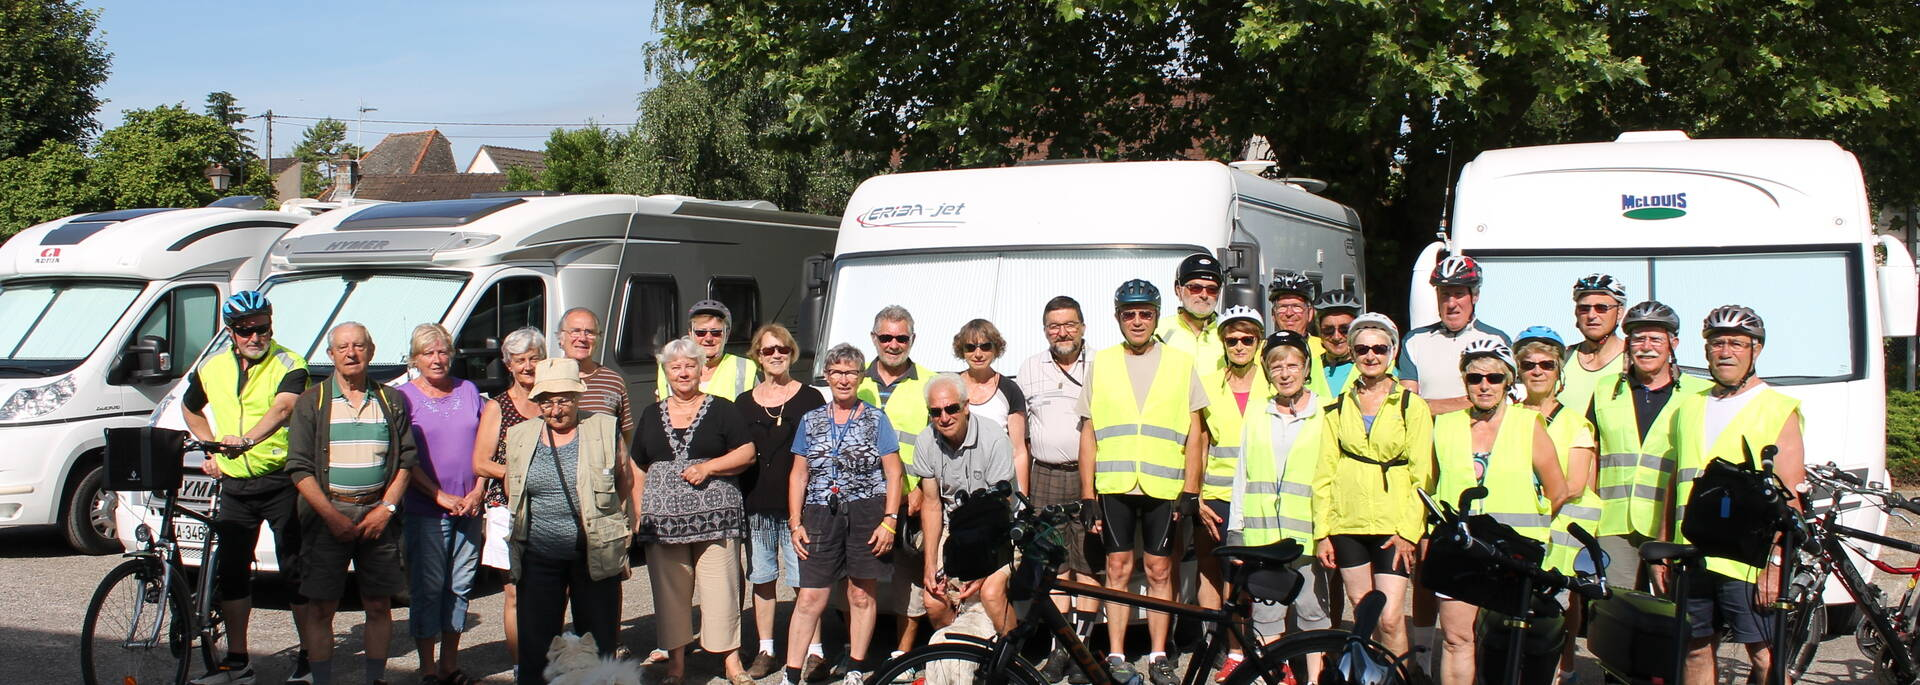 Givry voies vertes camping car